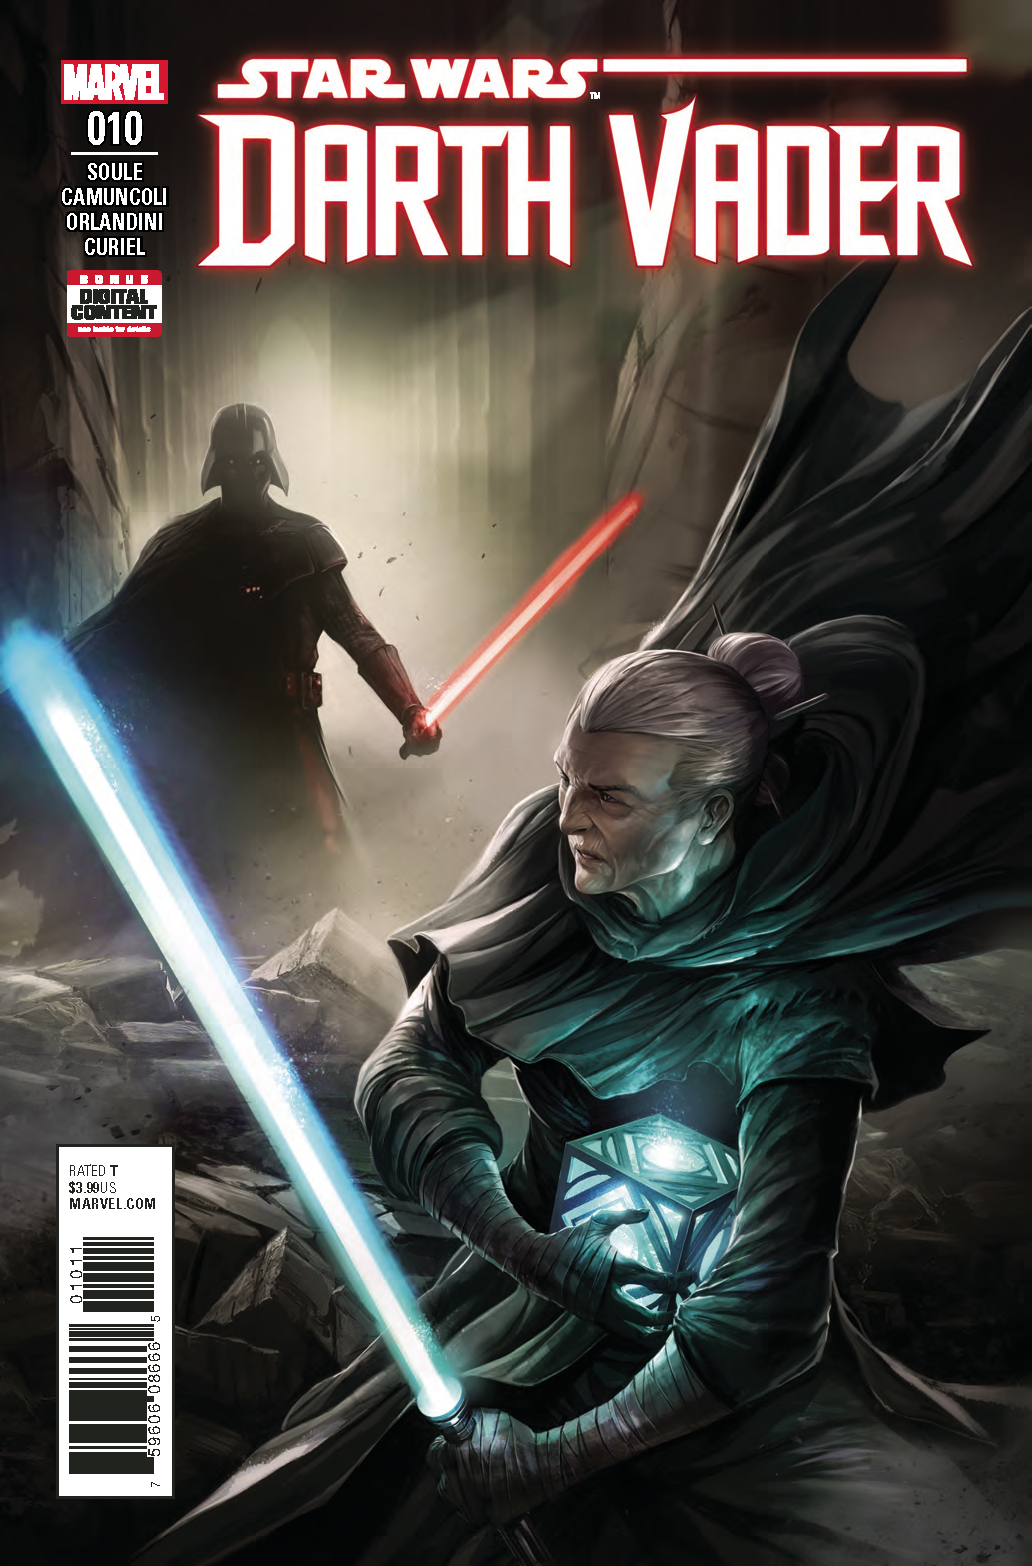 STAR WARS DARTH VADER #10